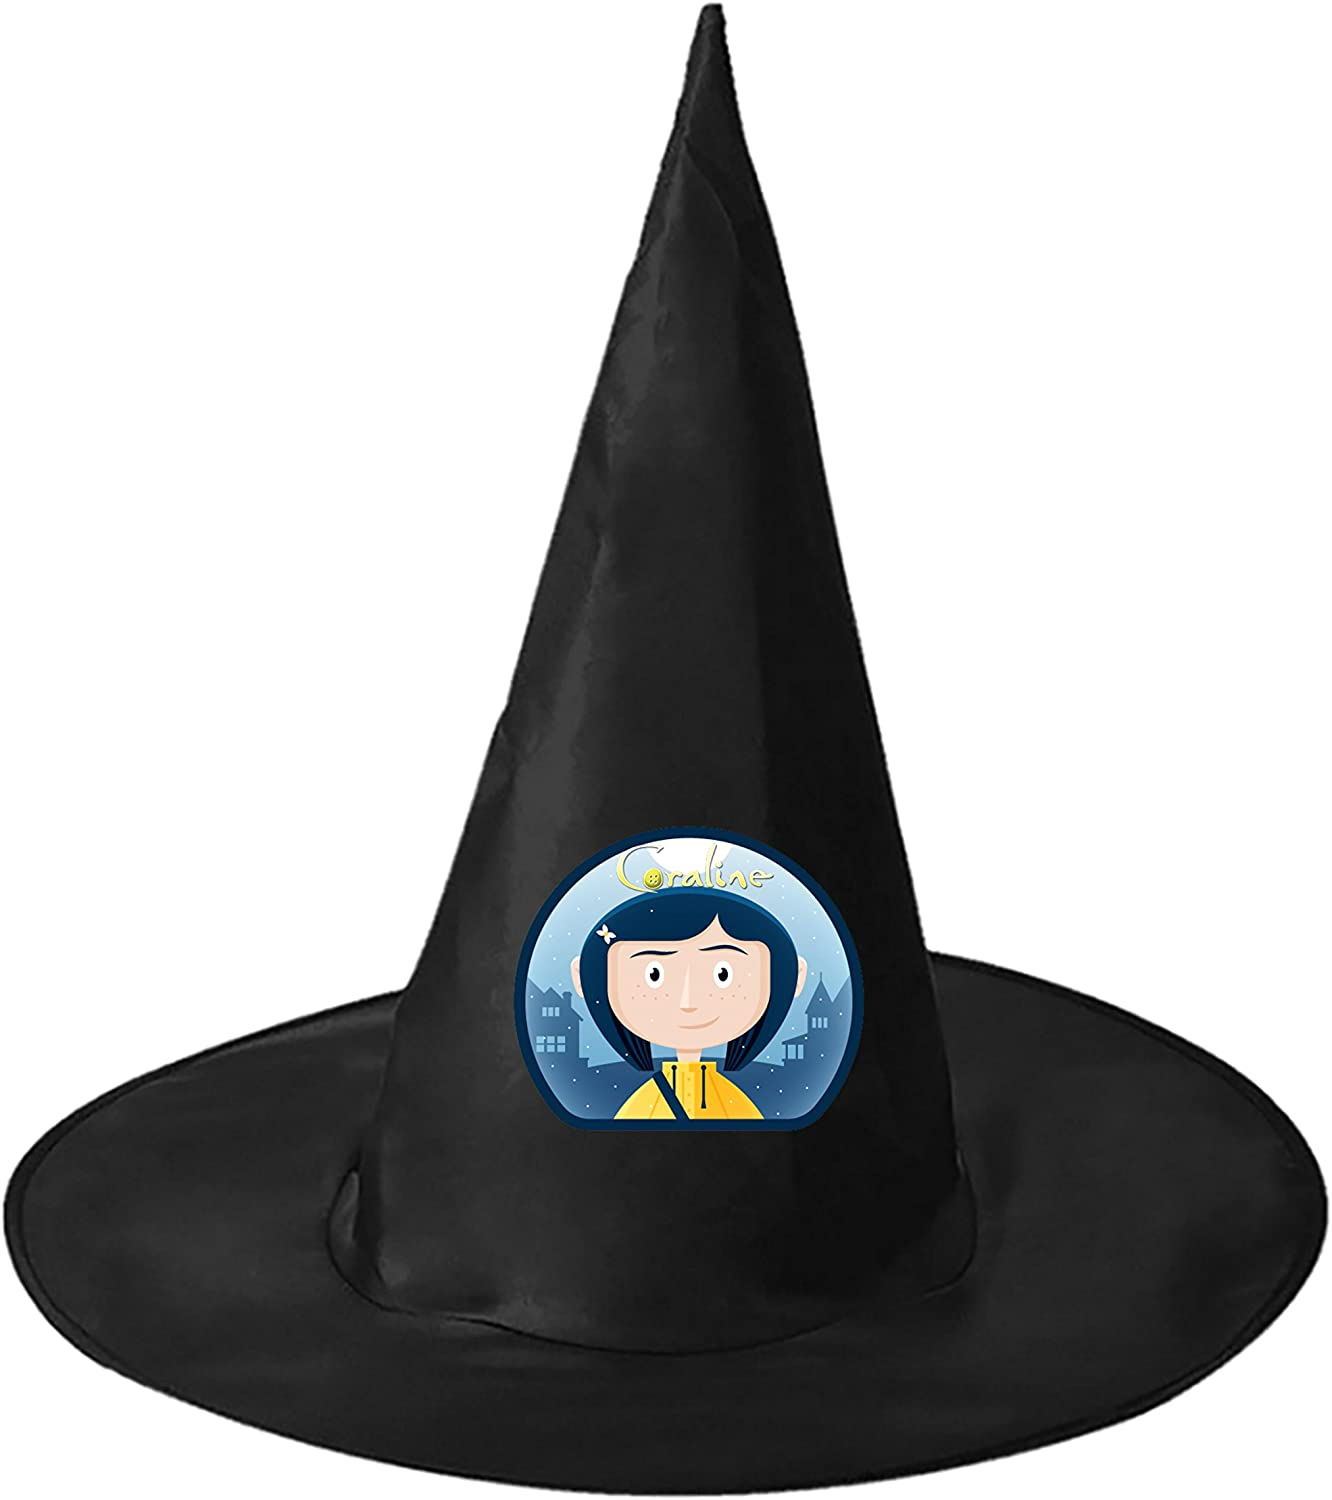 Zombie Mum Coraline Black Halloween Adult Kids Fabric Witch Hat Skull Wizard Cap Party Cosplay Magic Props Amazon Ca Clothing Accessories